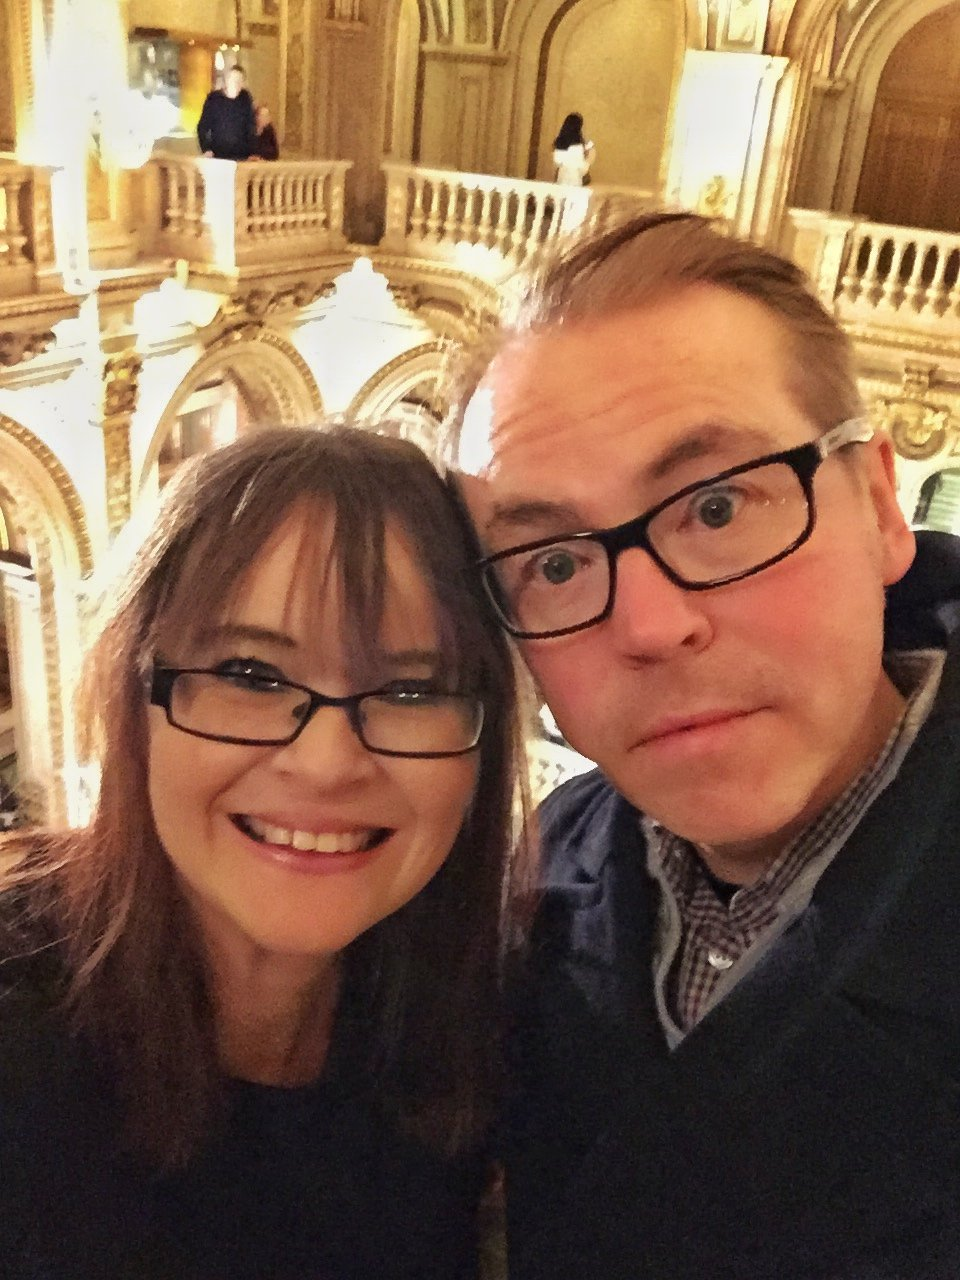 Mr Fletche and I at the Vienna State Opera House